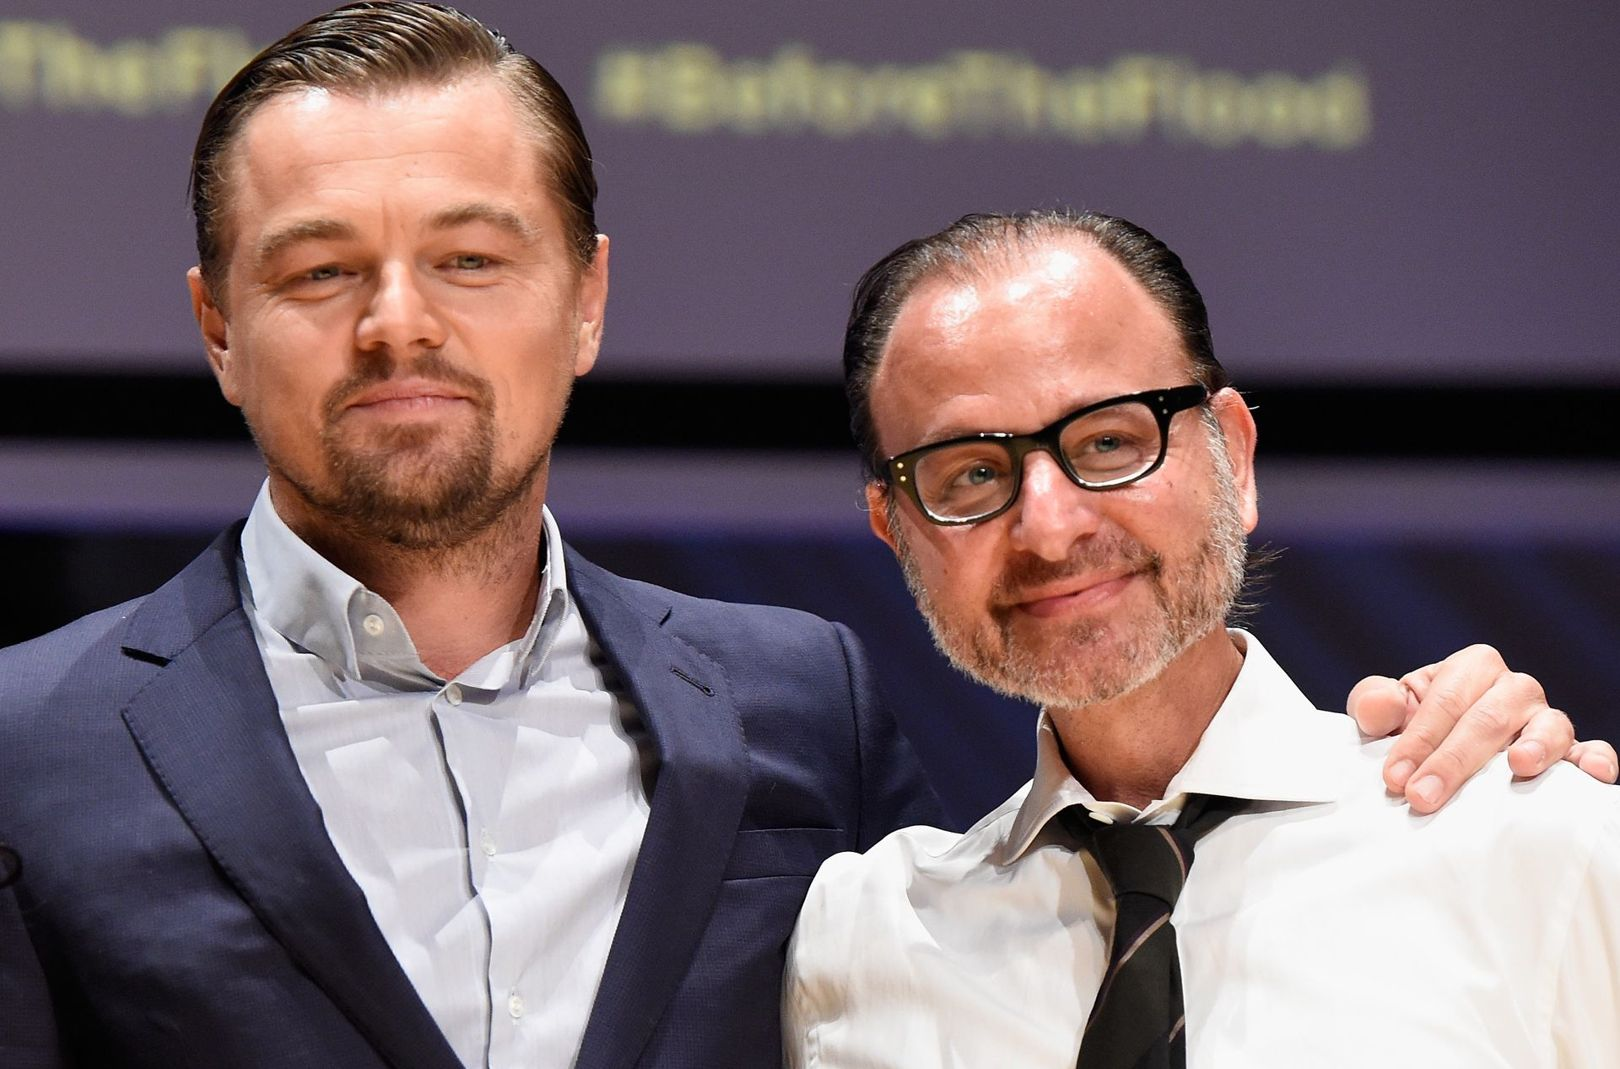 Edward Norton Saved Leonardo DiCaprio From Drowning While Shooting Documentary (Photo credit: GQ Magazine/Rex/Shutterstock)